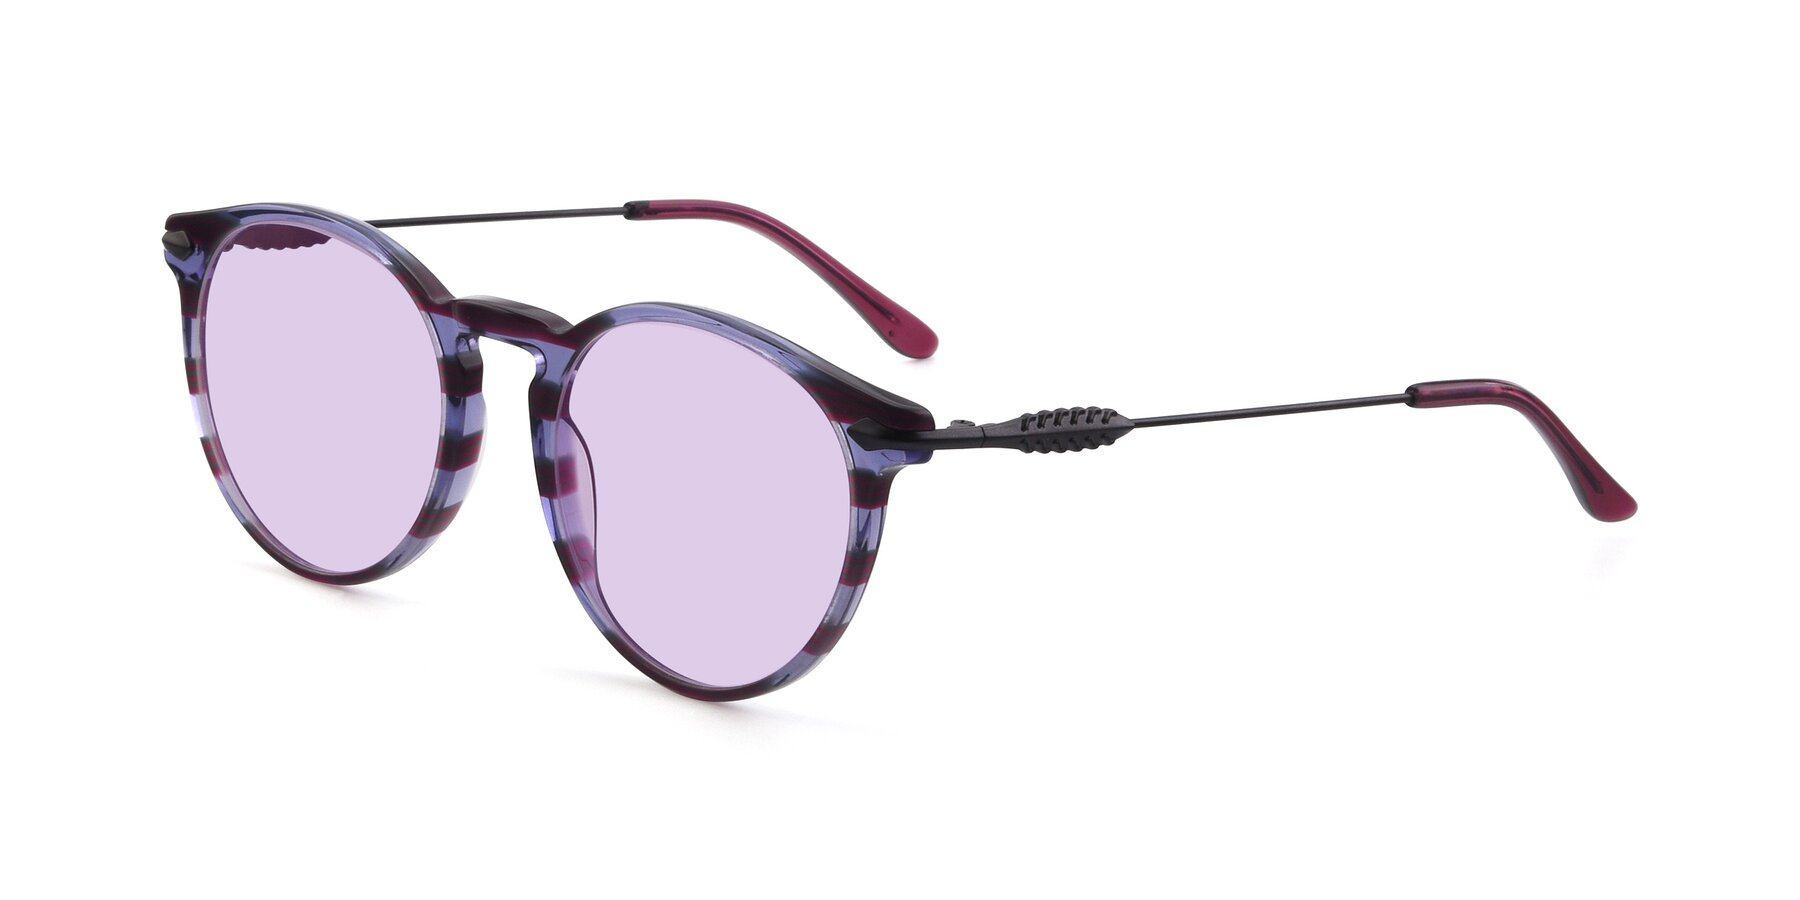 Angle of 17660 in Stripe Purple with Light Purple Tinted Lenses